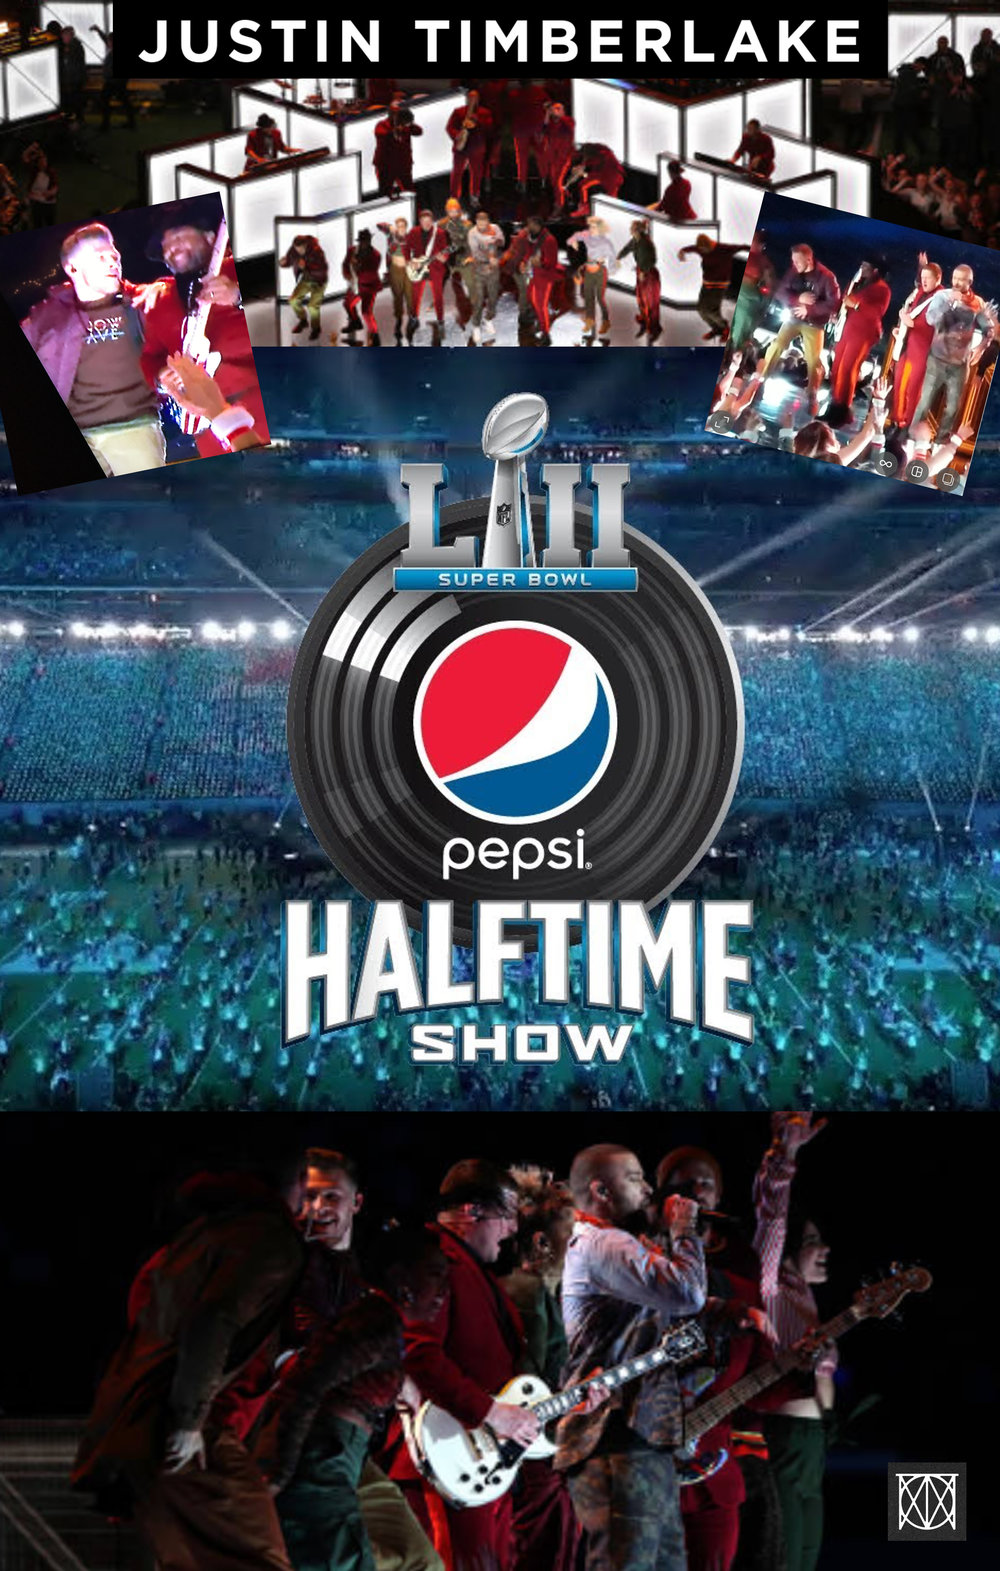 Super Bowl 52 Halftime Show Poster for SMS Kevin.jpg